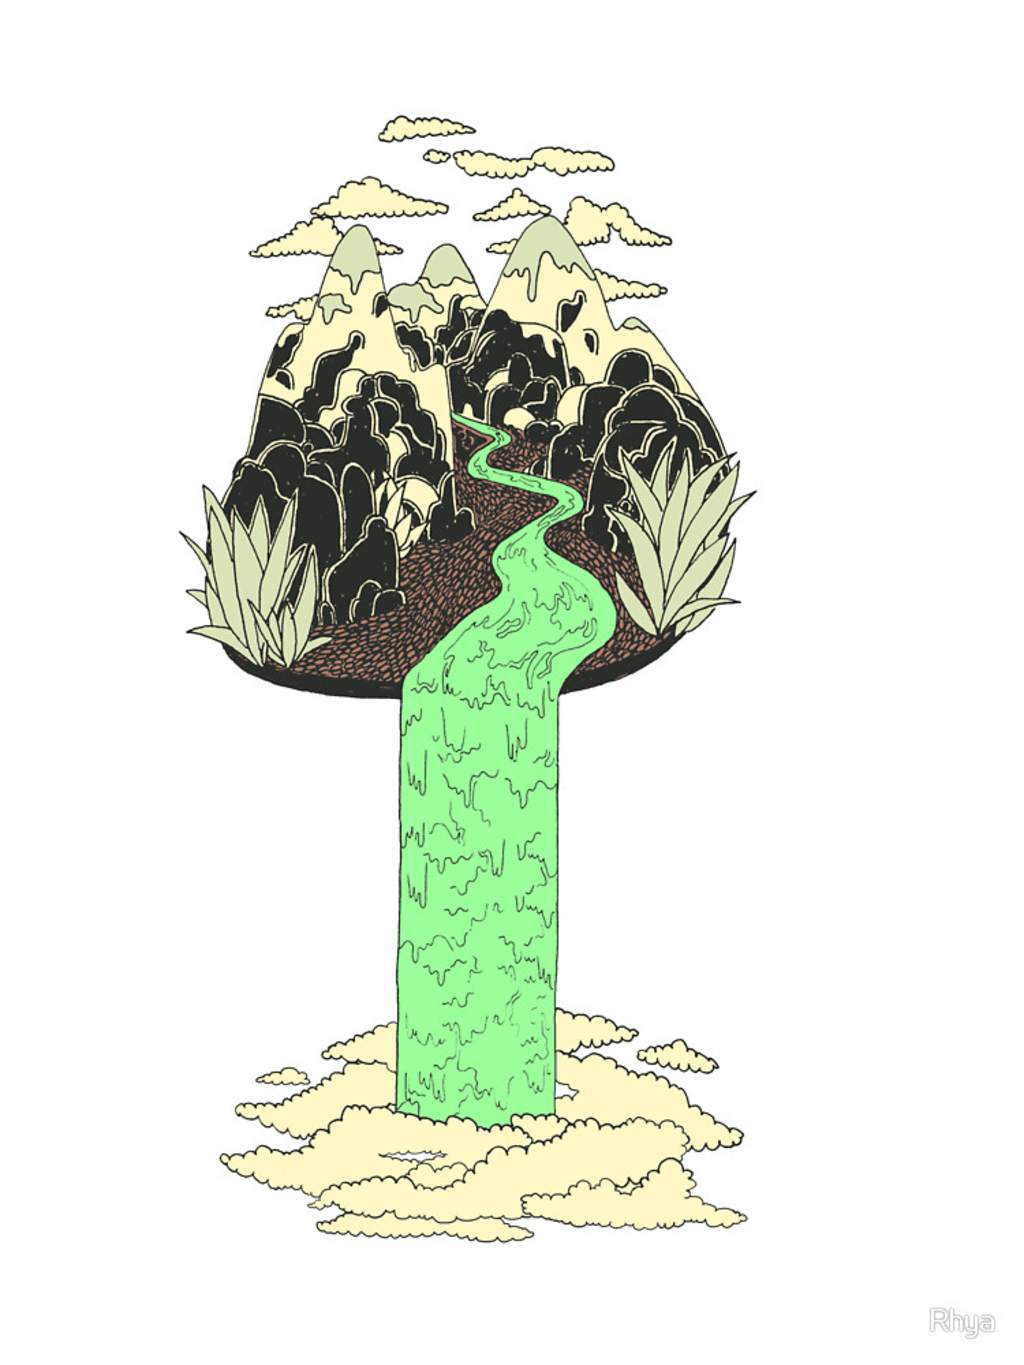 RedBubble: Levitating Island with a Source coming from nowhere